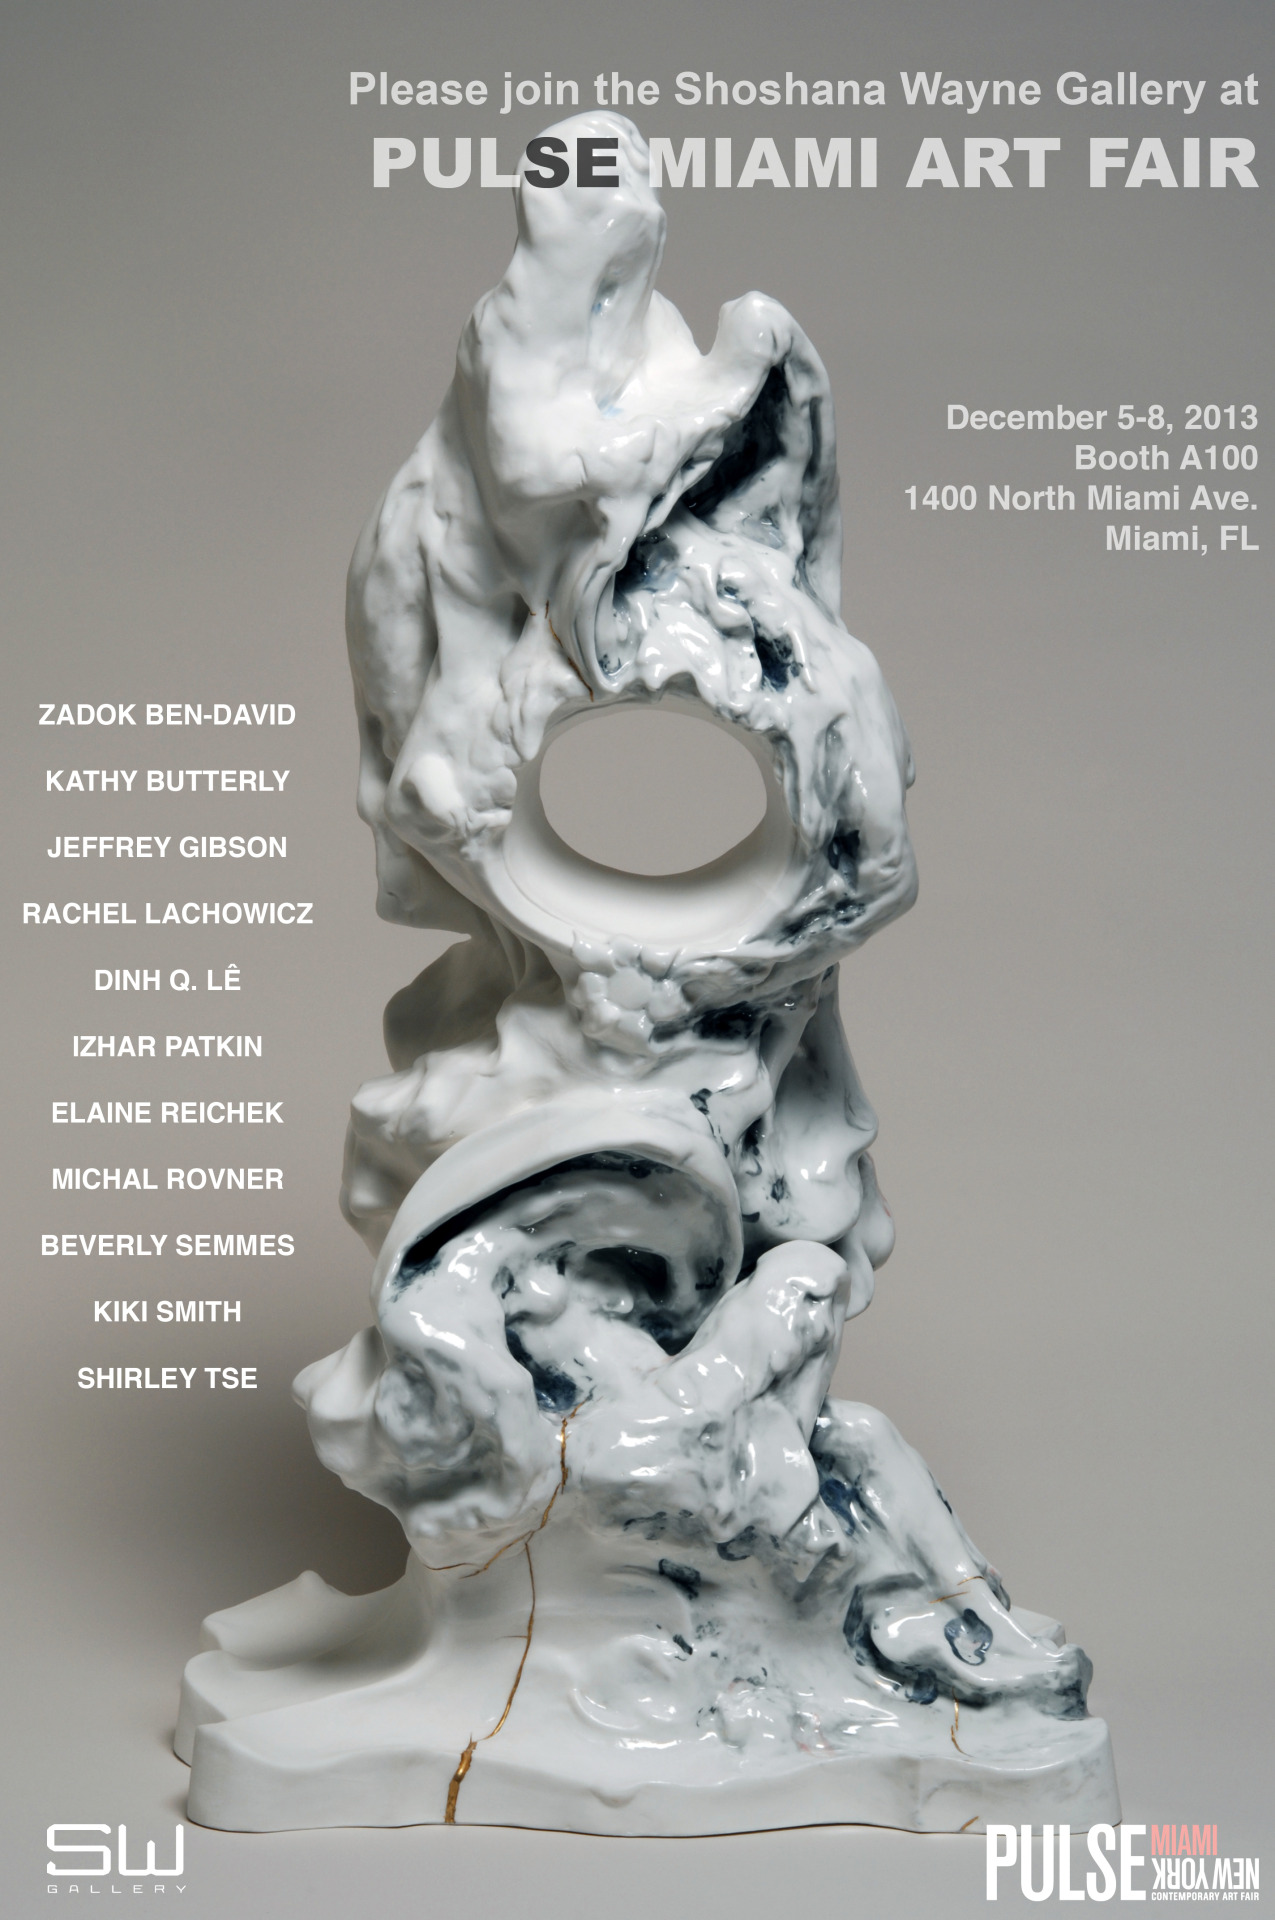 a8cfe516 PULSE Miami 2013 Shoshana Wayne Gallery is pleased to invite you to visit  Booth A-